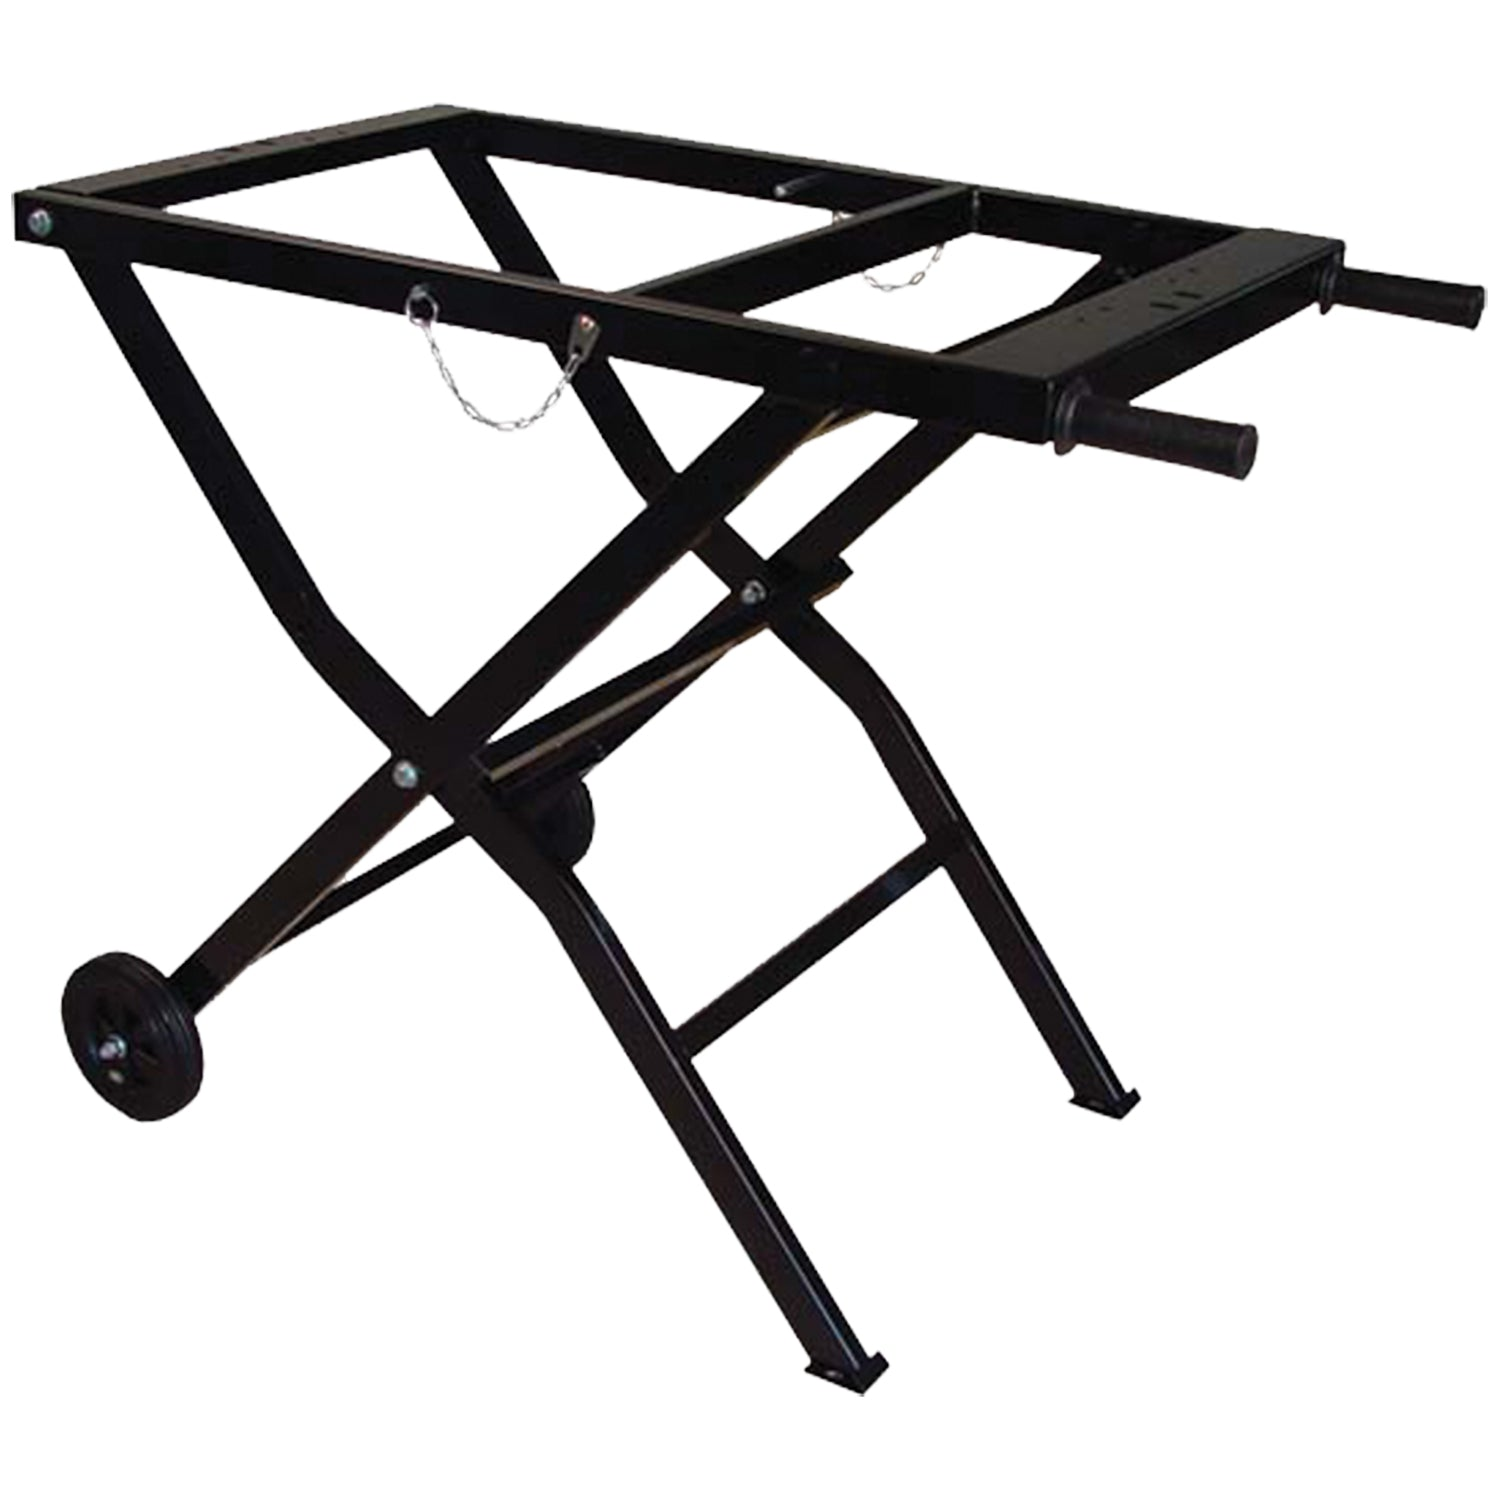 CC600T Tile Saw Folding Stand